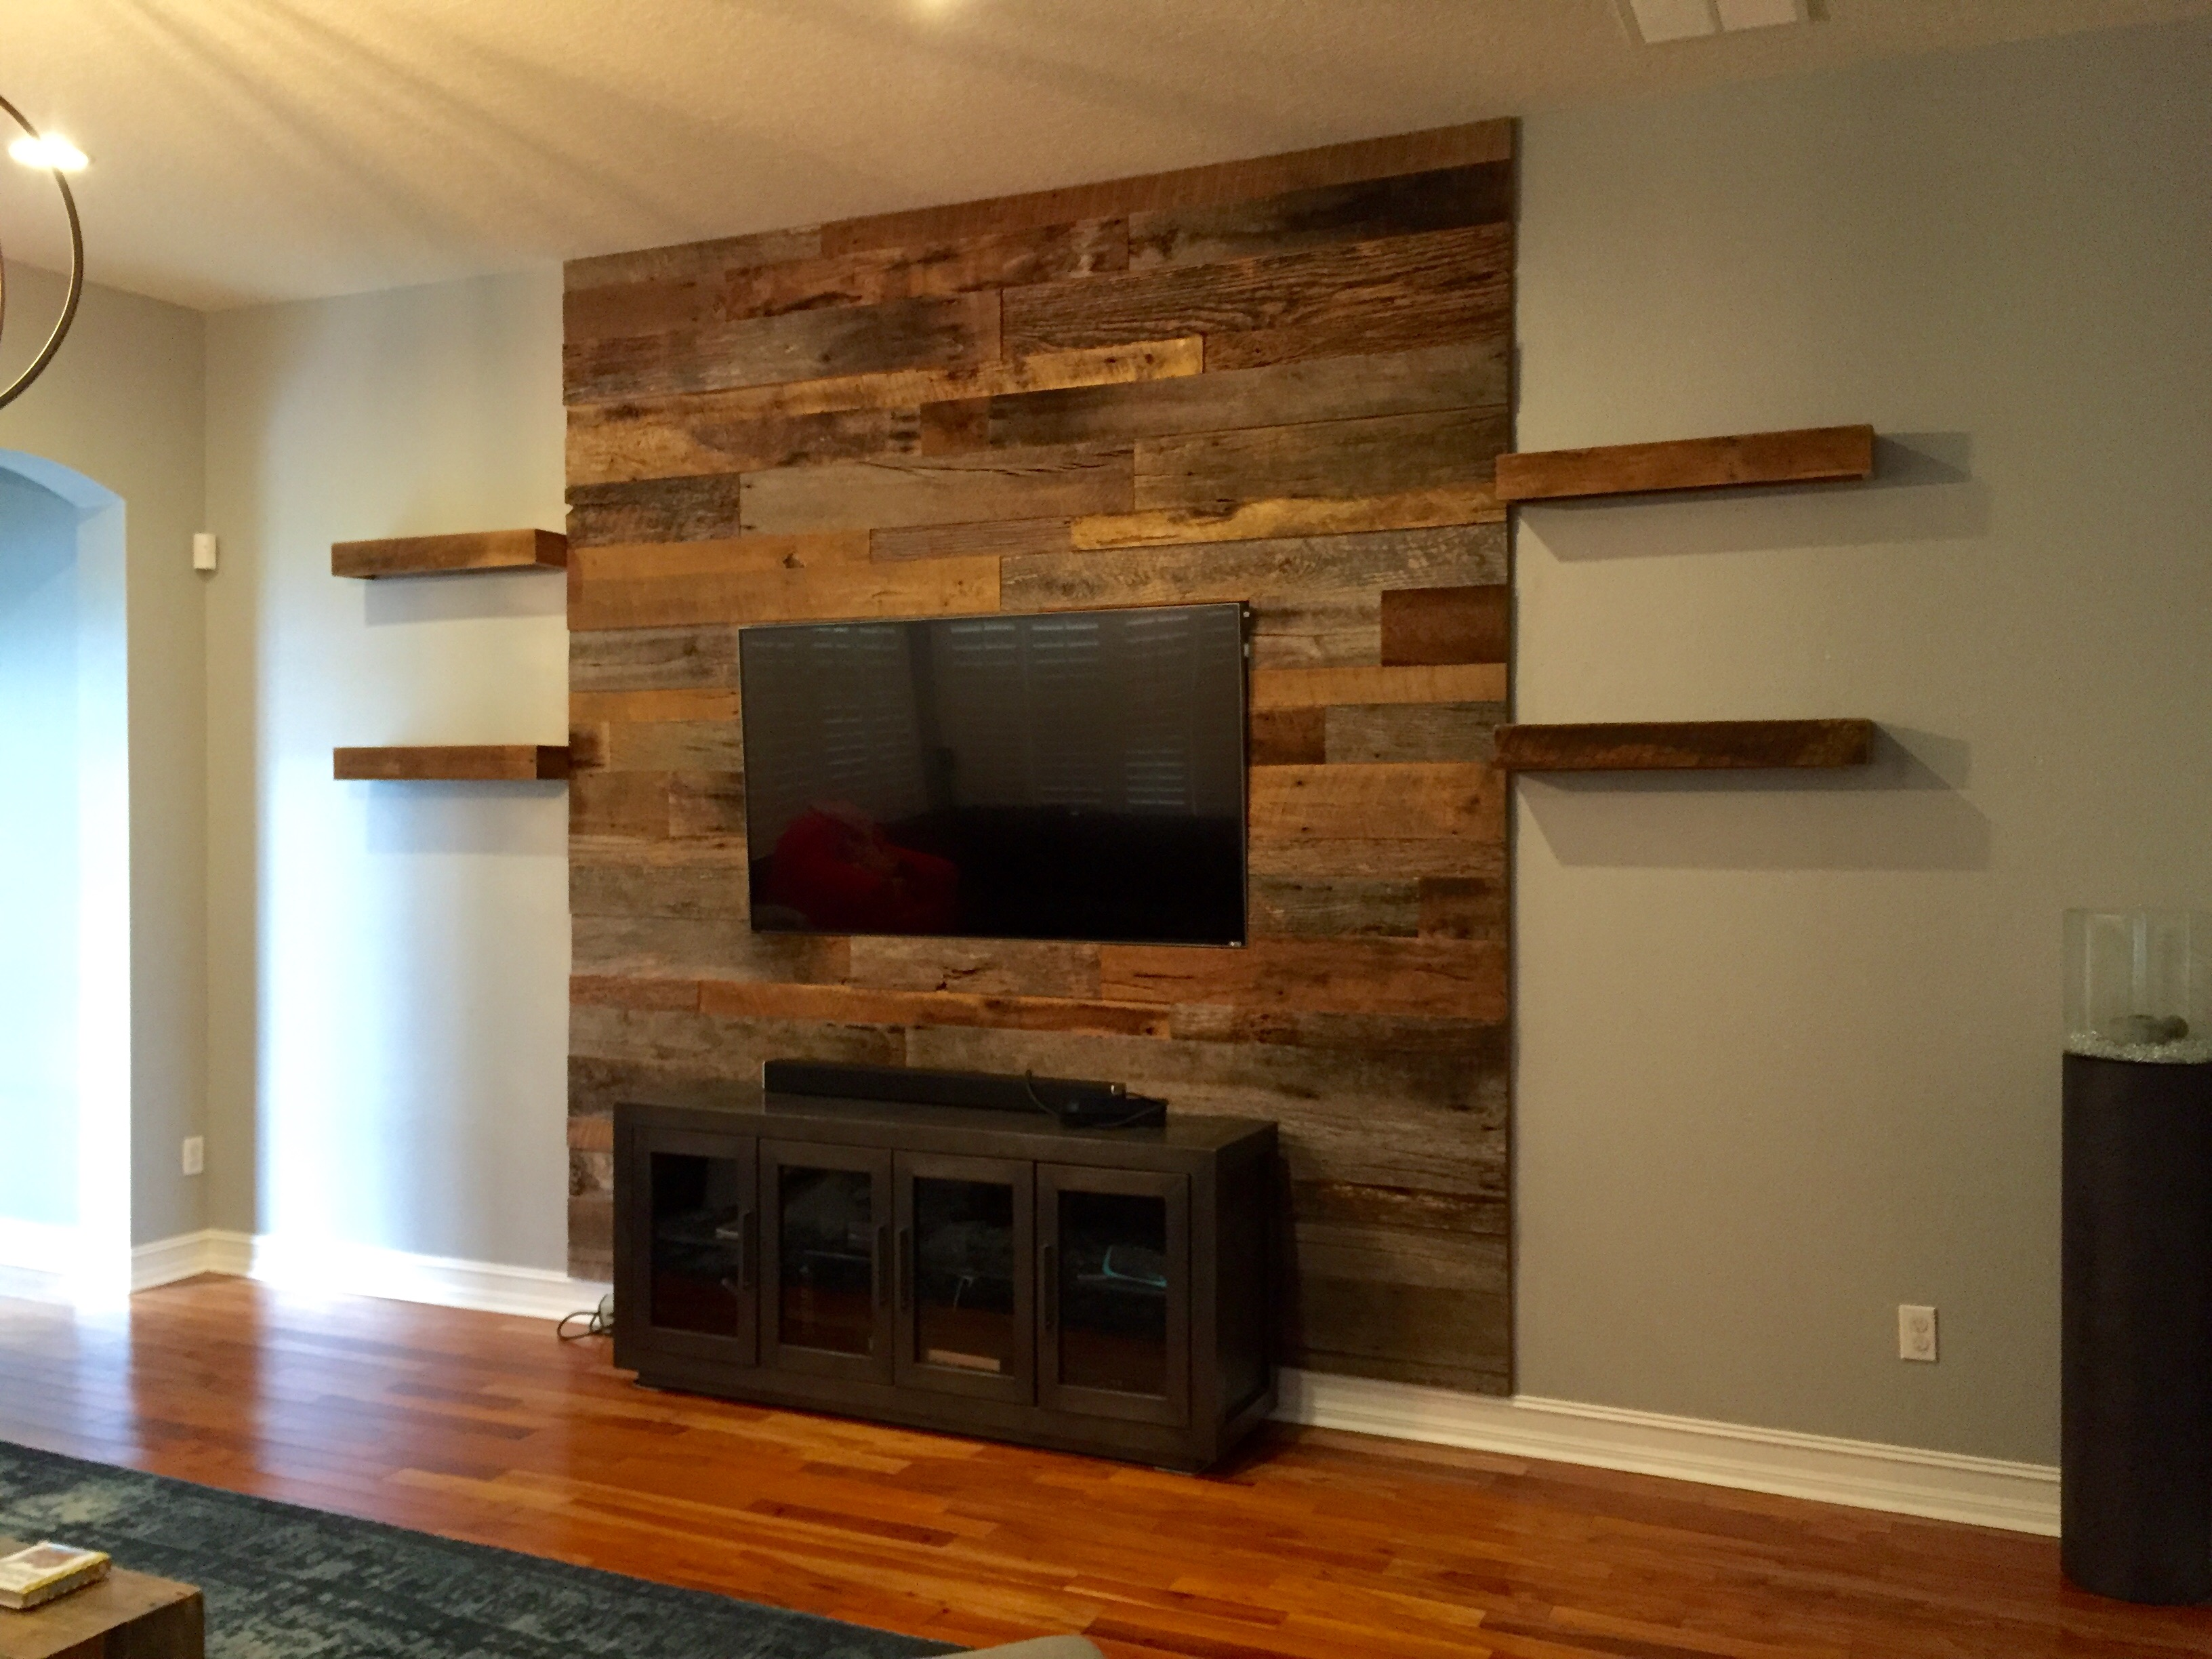 Trevor S Reclaimed Barn Wood Accent Wall With Shelving